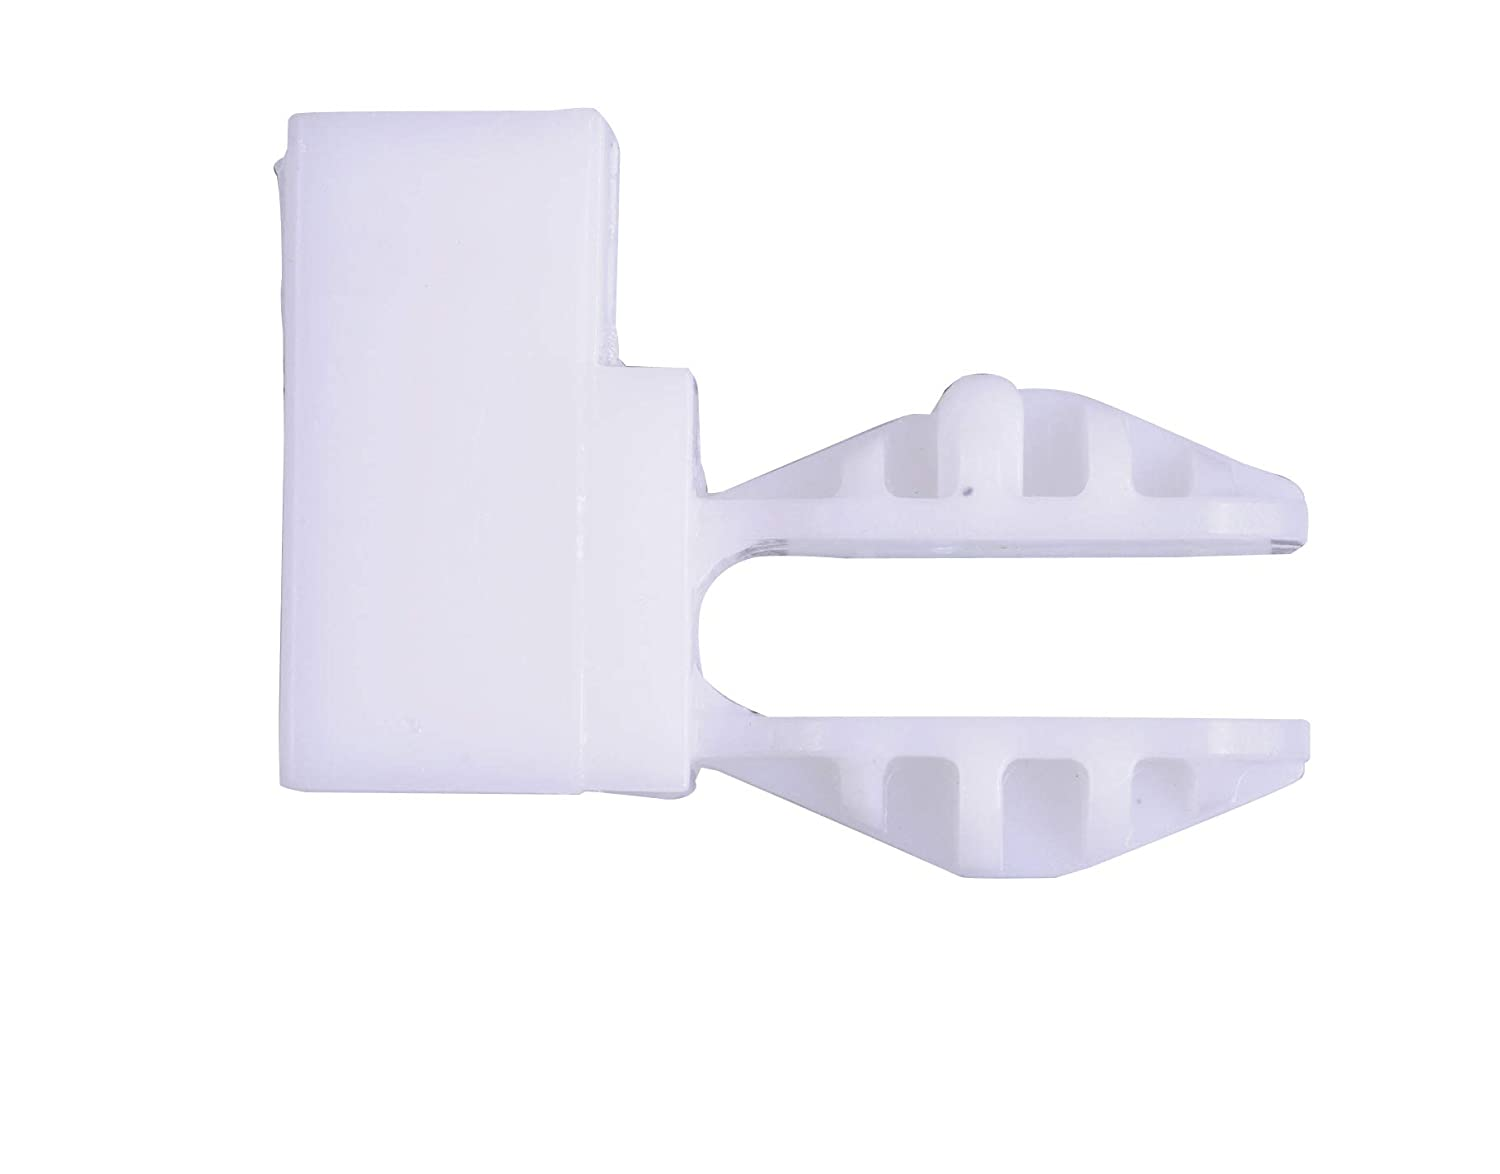 LG 4930JJ2021A Refrigerator Lower Toe Grille Clip